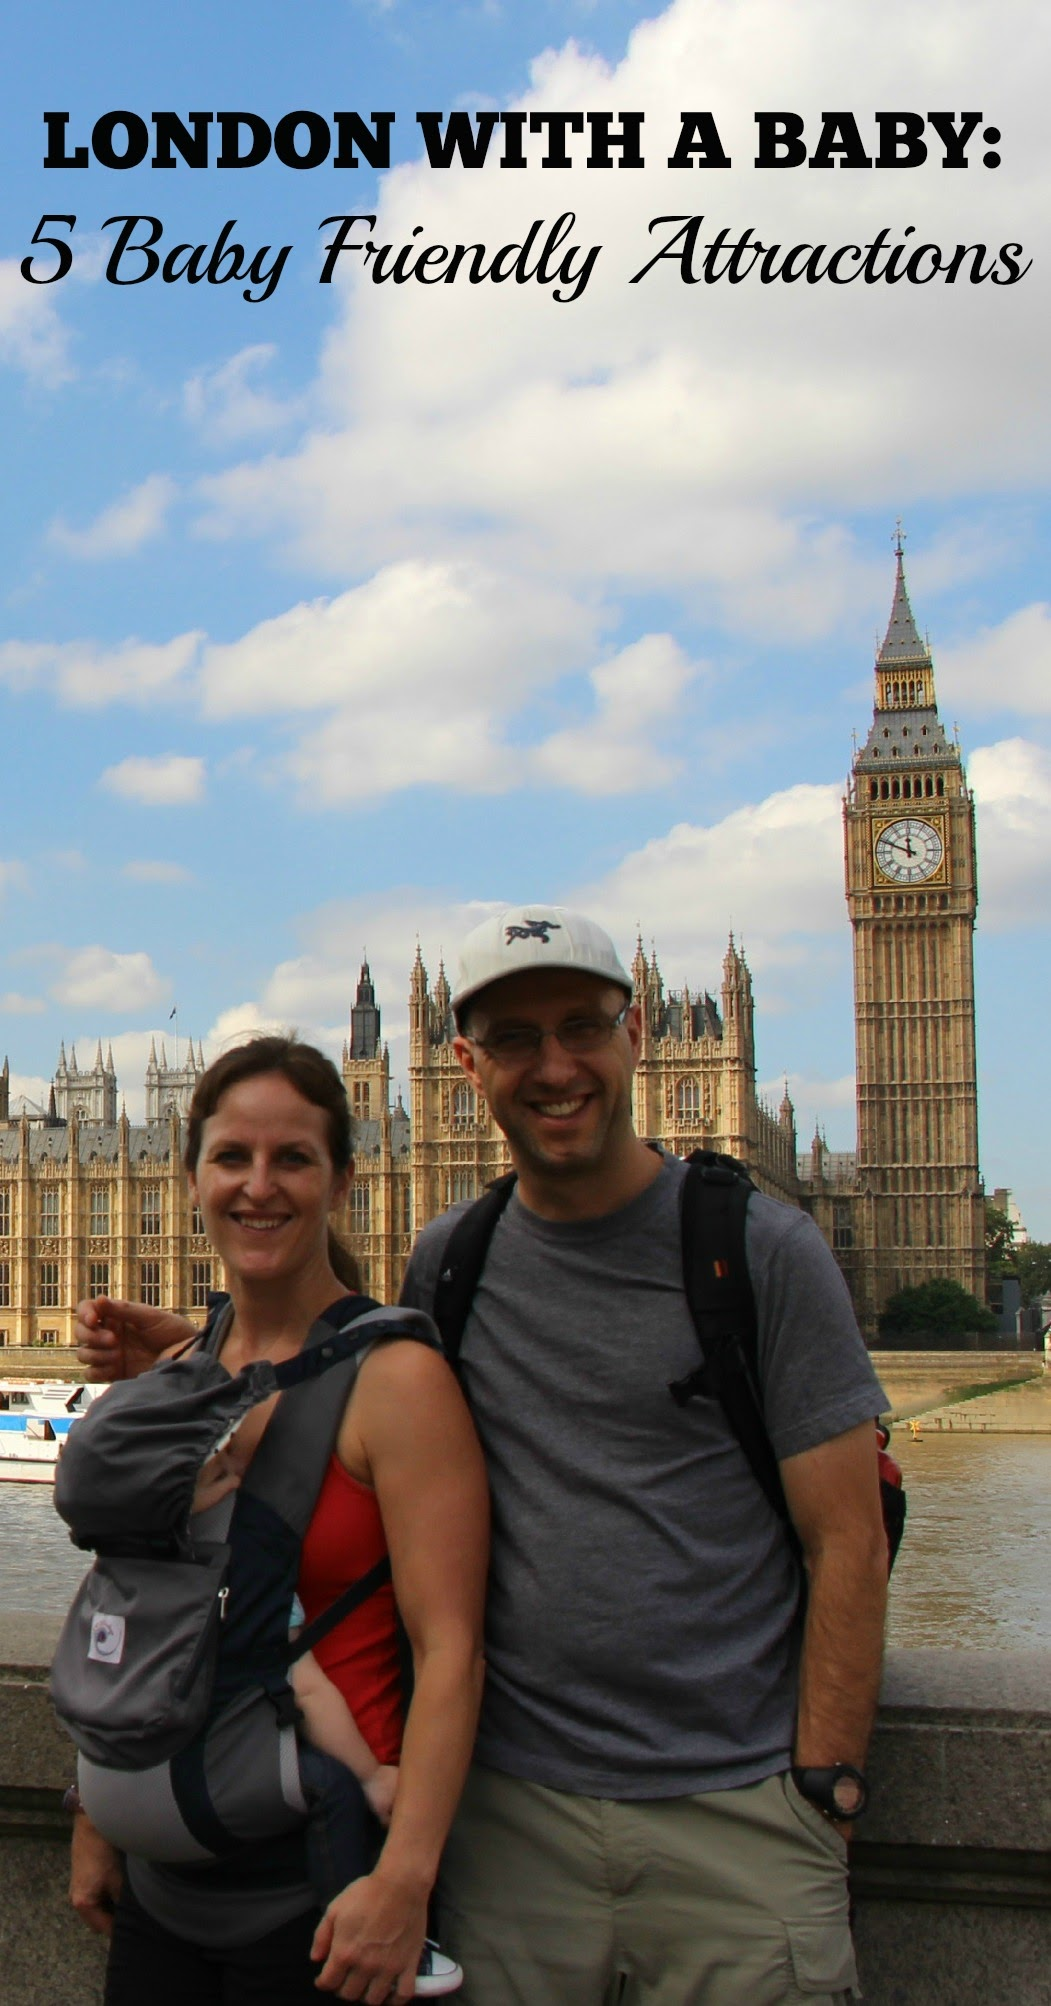 Traveling to London with a baby or toddler? Don't miss these 5 baby friendly activities in London! #london #travelwithbaby #baby #babytravel #toddlertravel #travelwithchildren